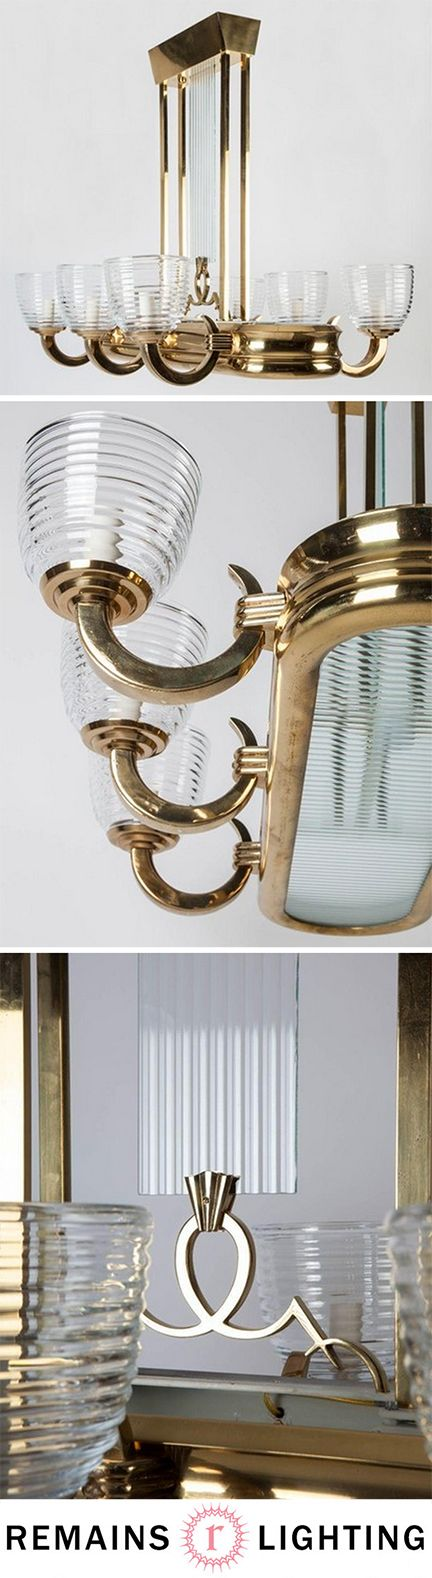 Art Deco Linear Chandelier Circa 1920 from